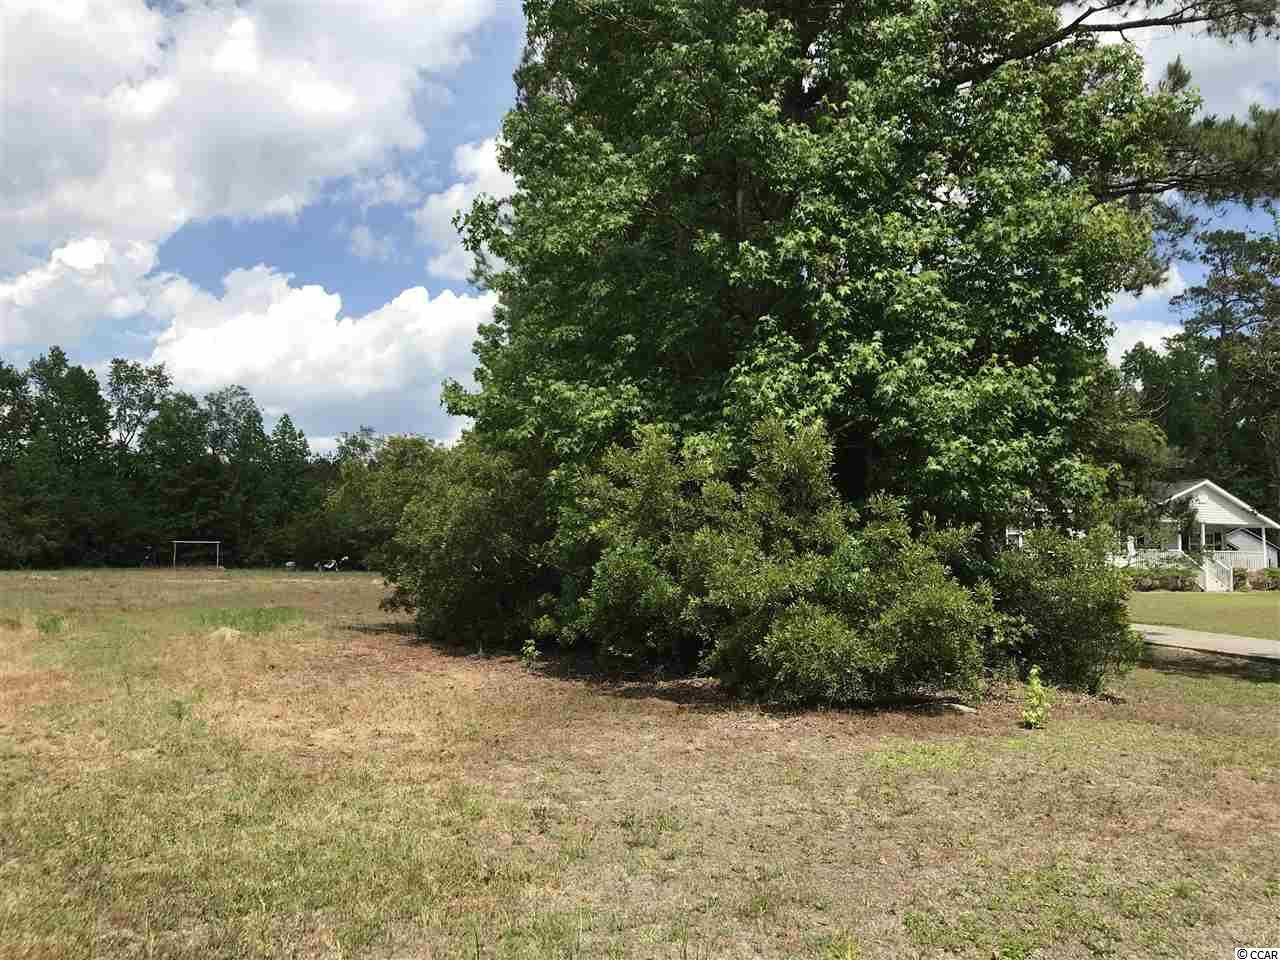 One acre lot with septic installed and has public water.  Cleared and ready for your new home.  Row of trees on the right side of the lot gives you privacy. No HOA fees and outside the city limits.